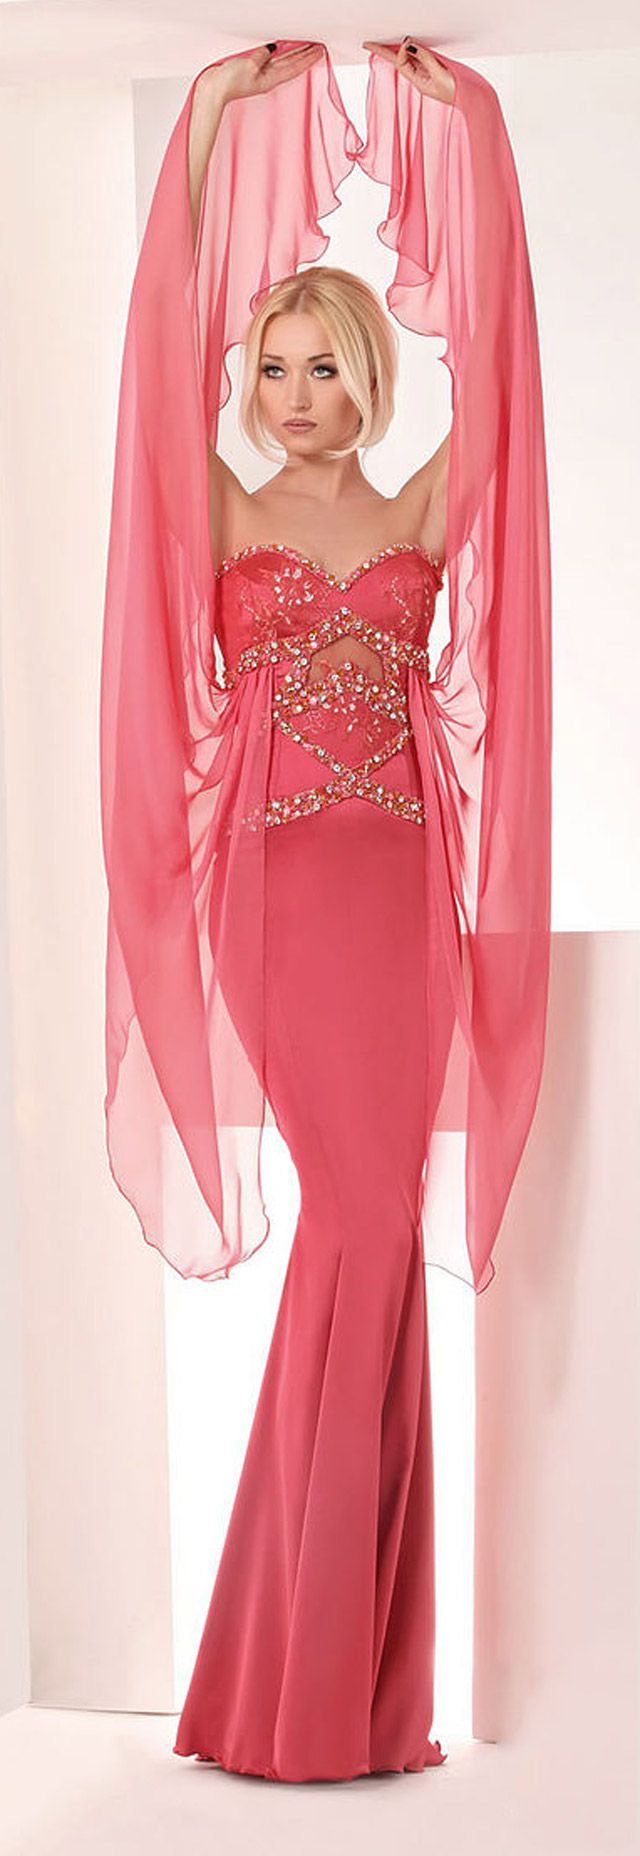 607 best BEAUTIFUL PINK GOWNS AND DRESSES VOL 2 images on Pinterest ...